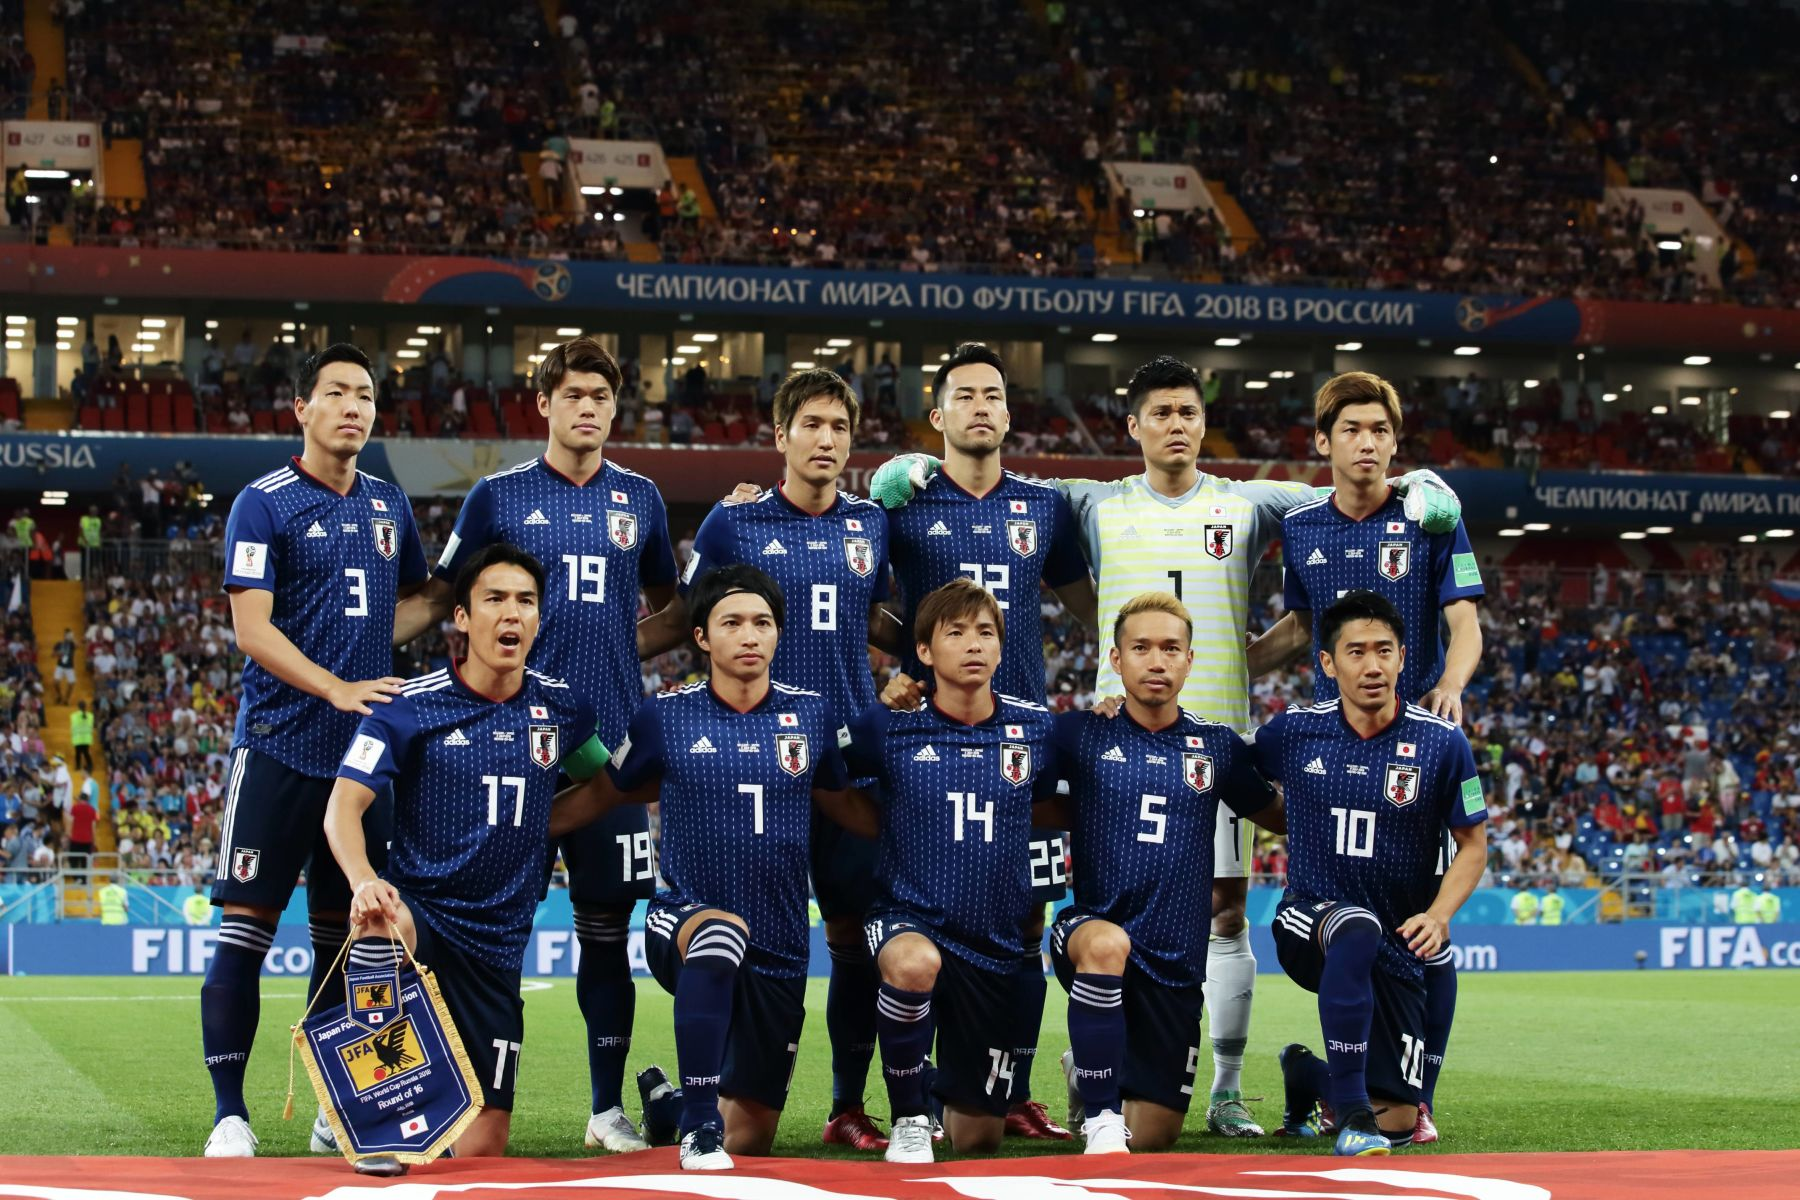 Japan team group line-up (JPN), JULY 2, 2018 - Football / Soccer : Russia 2018 World Cup round of 16 football match between Belgium and Japan at the Rostov Arena in Rostov-On-Don on July 2, 2018. (Photo by AFLO) MISTRZOSTWA SWIATA W PILCE NOZNEJ PILKA NOZNA ROSJA MUNDIAL W ROSJI MECZ BELGIA VS JAPONIA FOT.AFLO/NEWSPIX.PL POLAND ONLY!!! --- Newspix.pl *** Local Caption *** www.newspix.pl mail us: info@newspix.pl call us: 0048 022 23 22 222 --- Polish Picture Agency by Ringier Axel Springer Poland